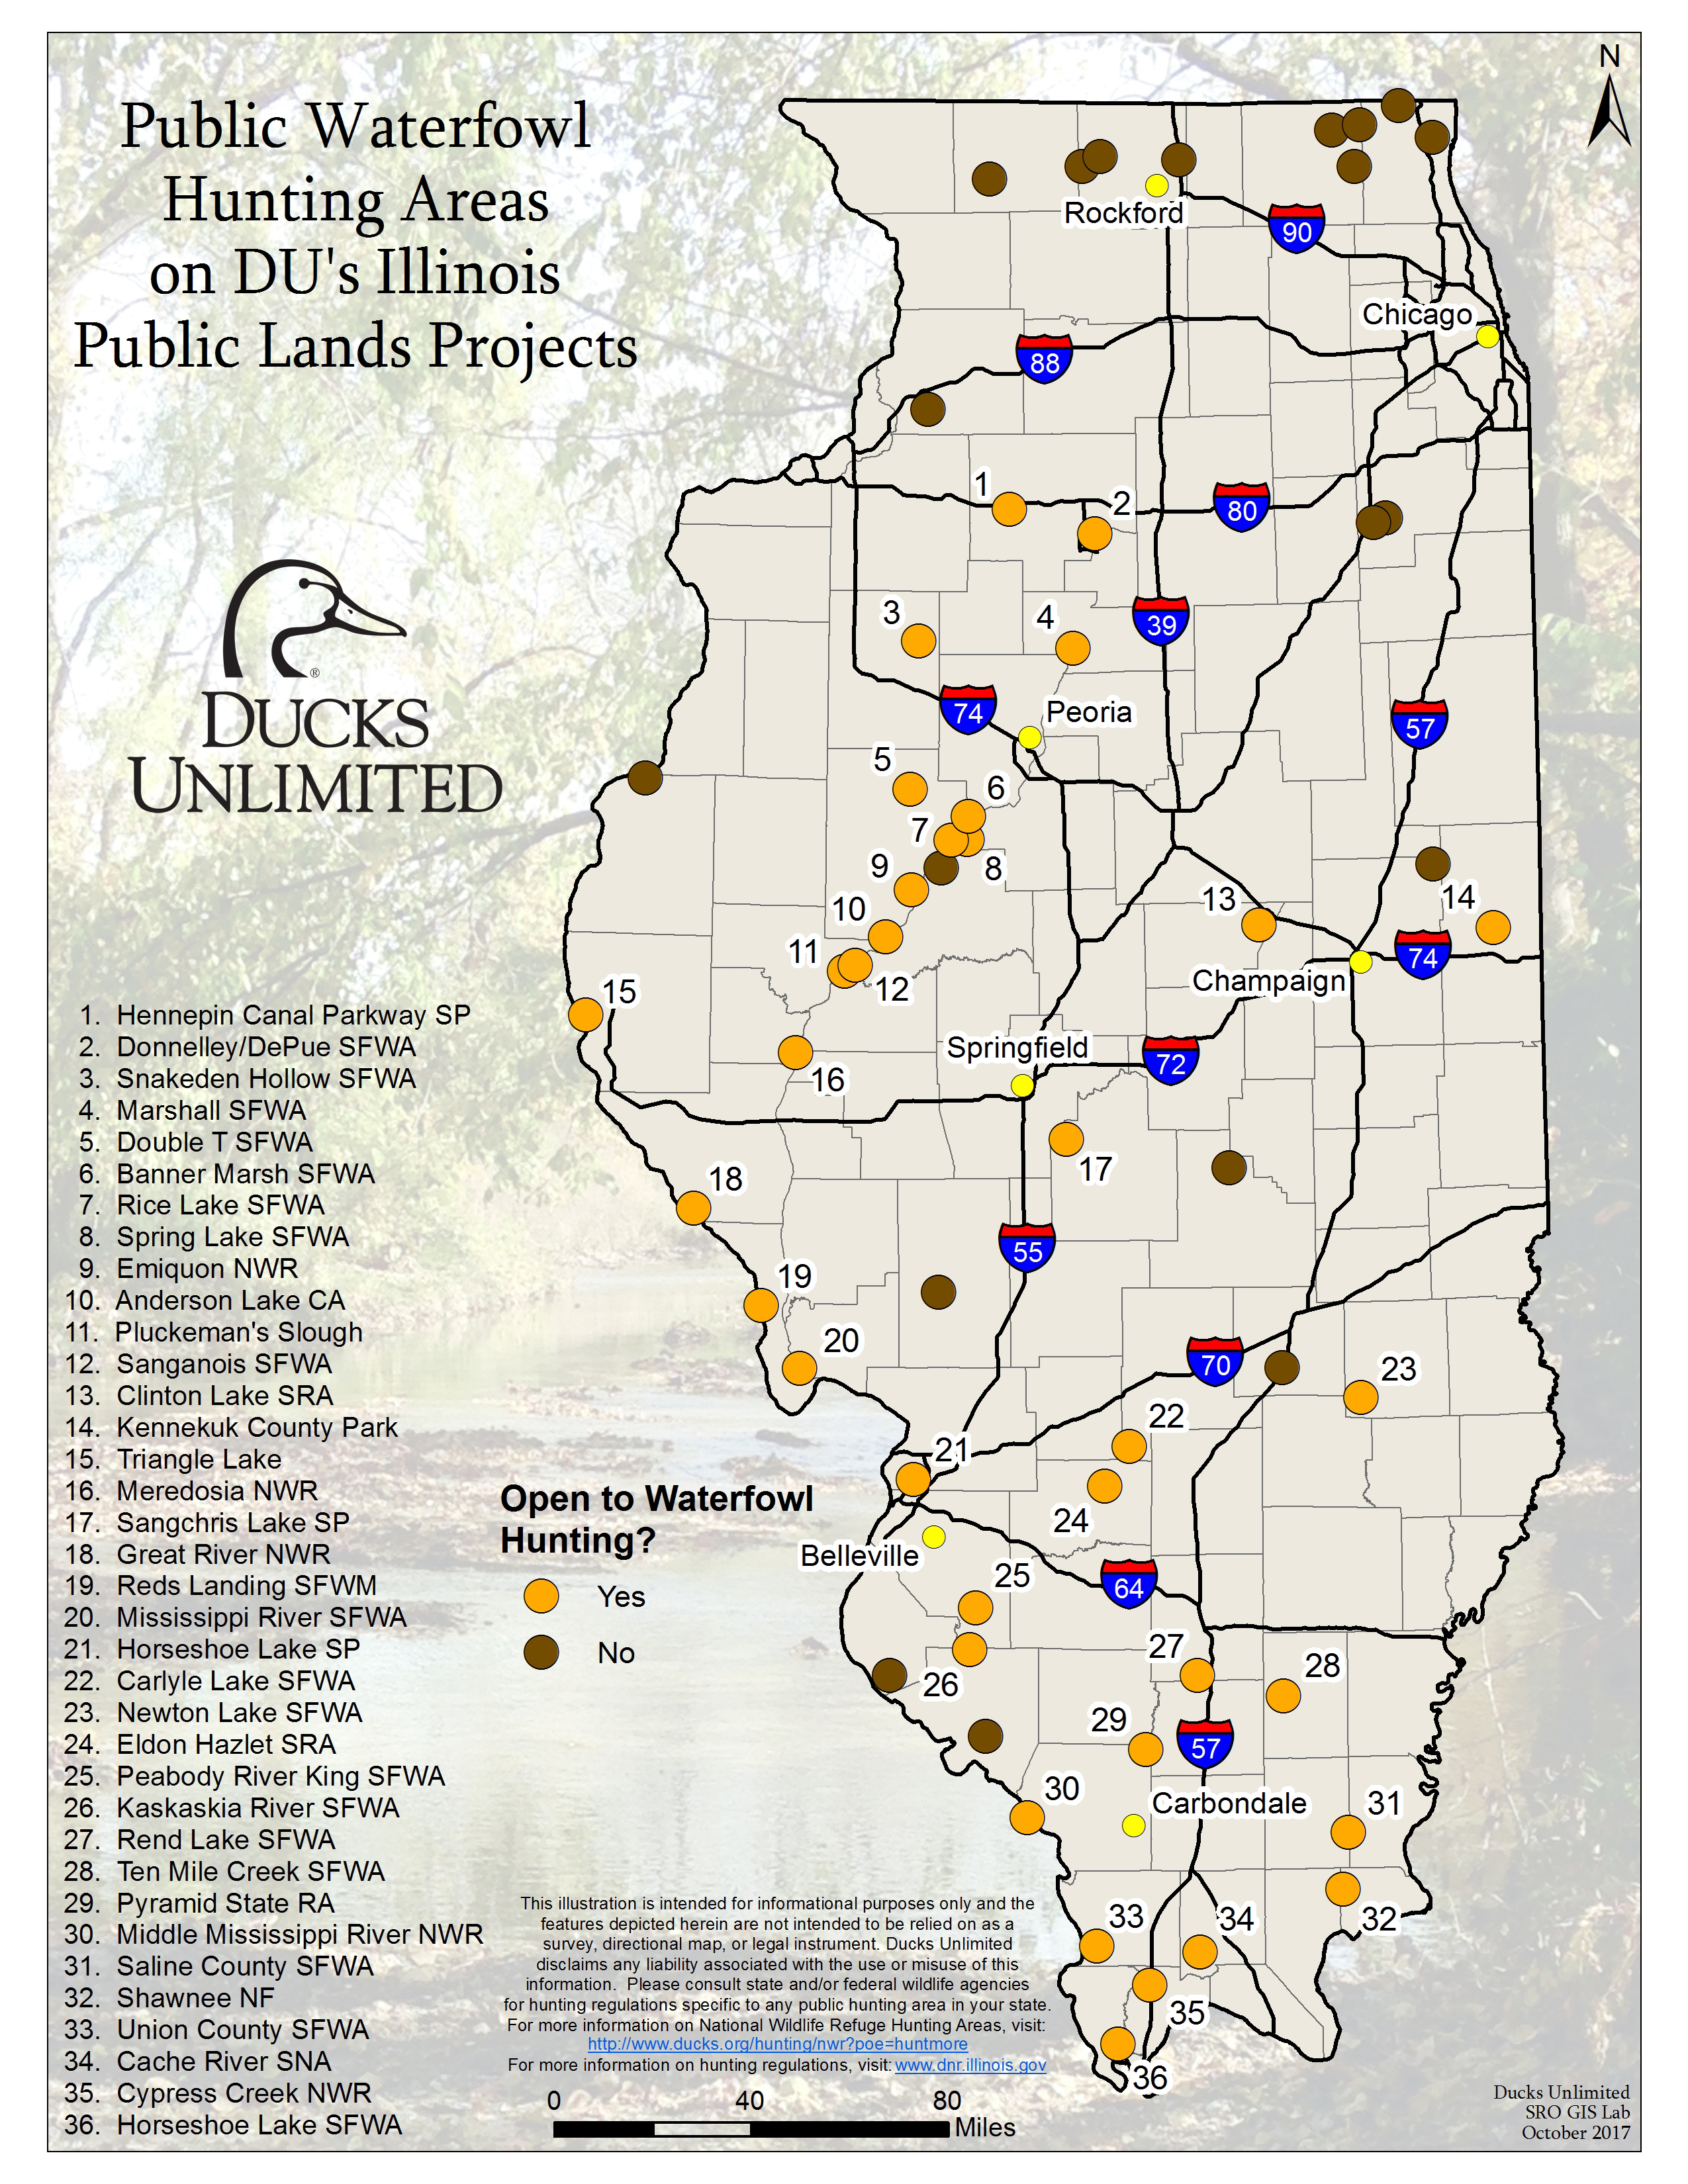 Public Waterfowl Hunting Areas on DU Public Lands Projects on map of idaho politics, map of idaho minerals, map of idaho airports, map of idaho state parks, map of idaho montana, map of idaho united states, map of idaho highways, map of idaho roads, map of idaho wildlife, map of idaho rivers, map of idaho judicial districts, map of idaho national parks, map of idaho counties, map of idaho campgrounds, map of idaho food, map of idaho recreation, map of idaho forests, map of idaho native americans, map of idaho lakes, map of idaho legislative districts,